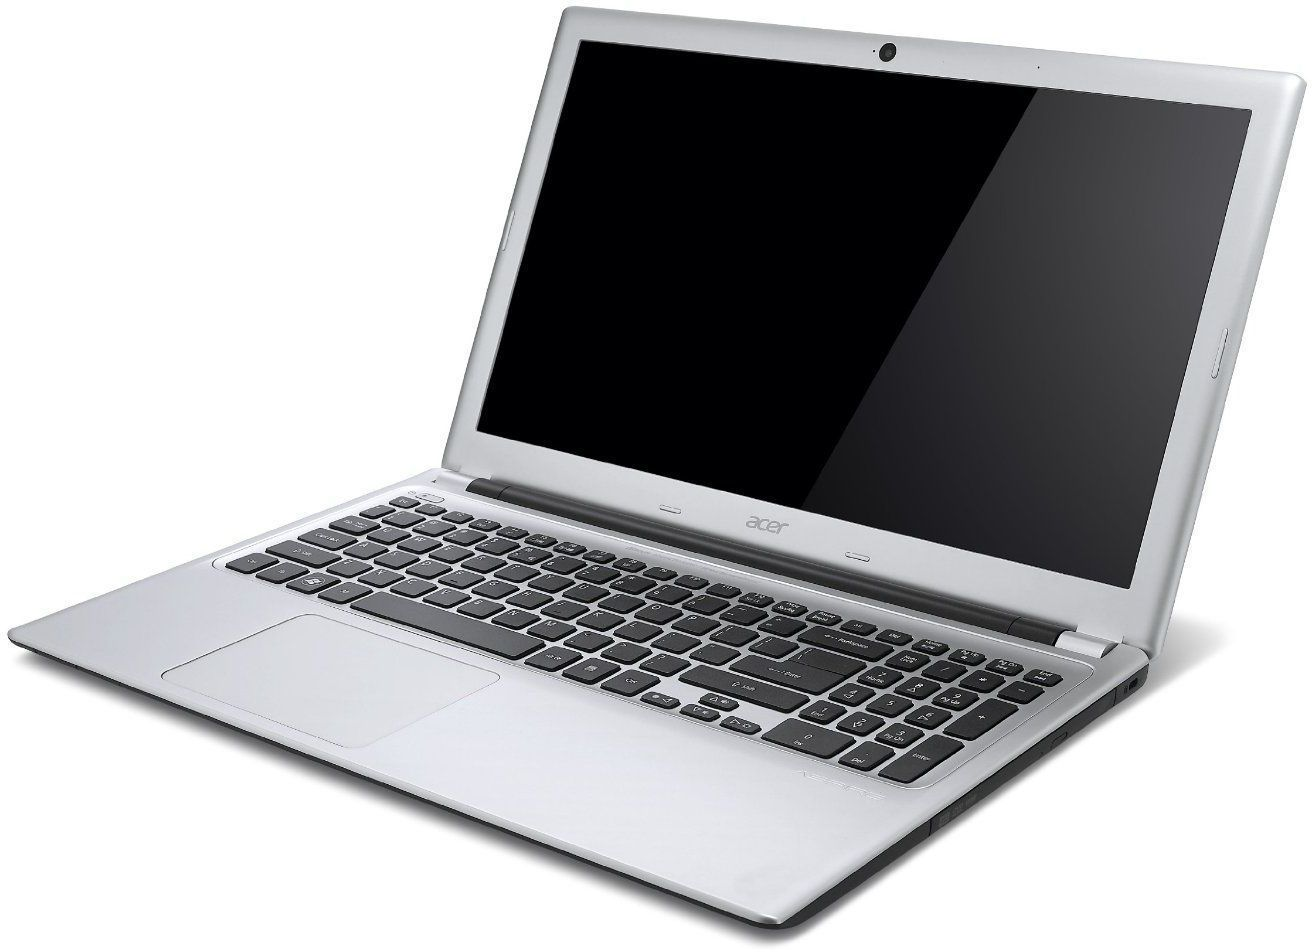 Acer Aspire E1-571 i5 Windows 8 | Rapid PCs